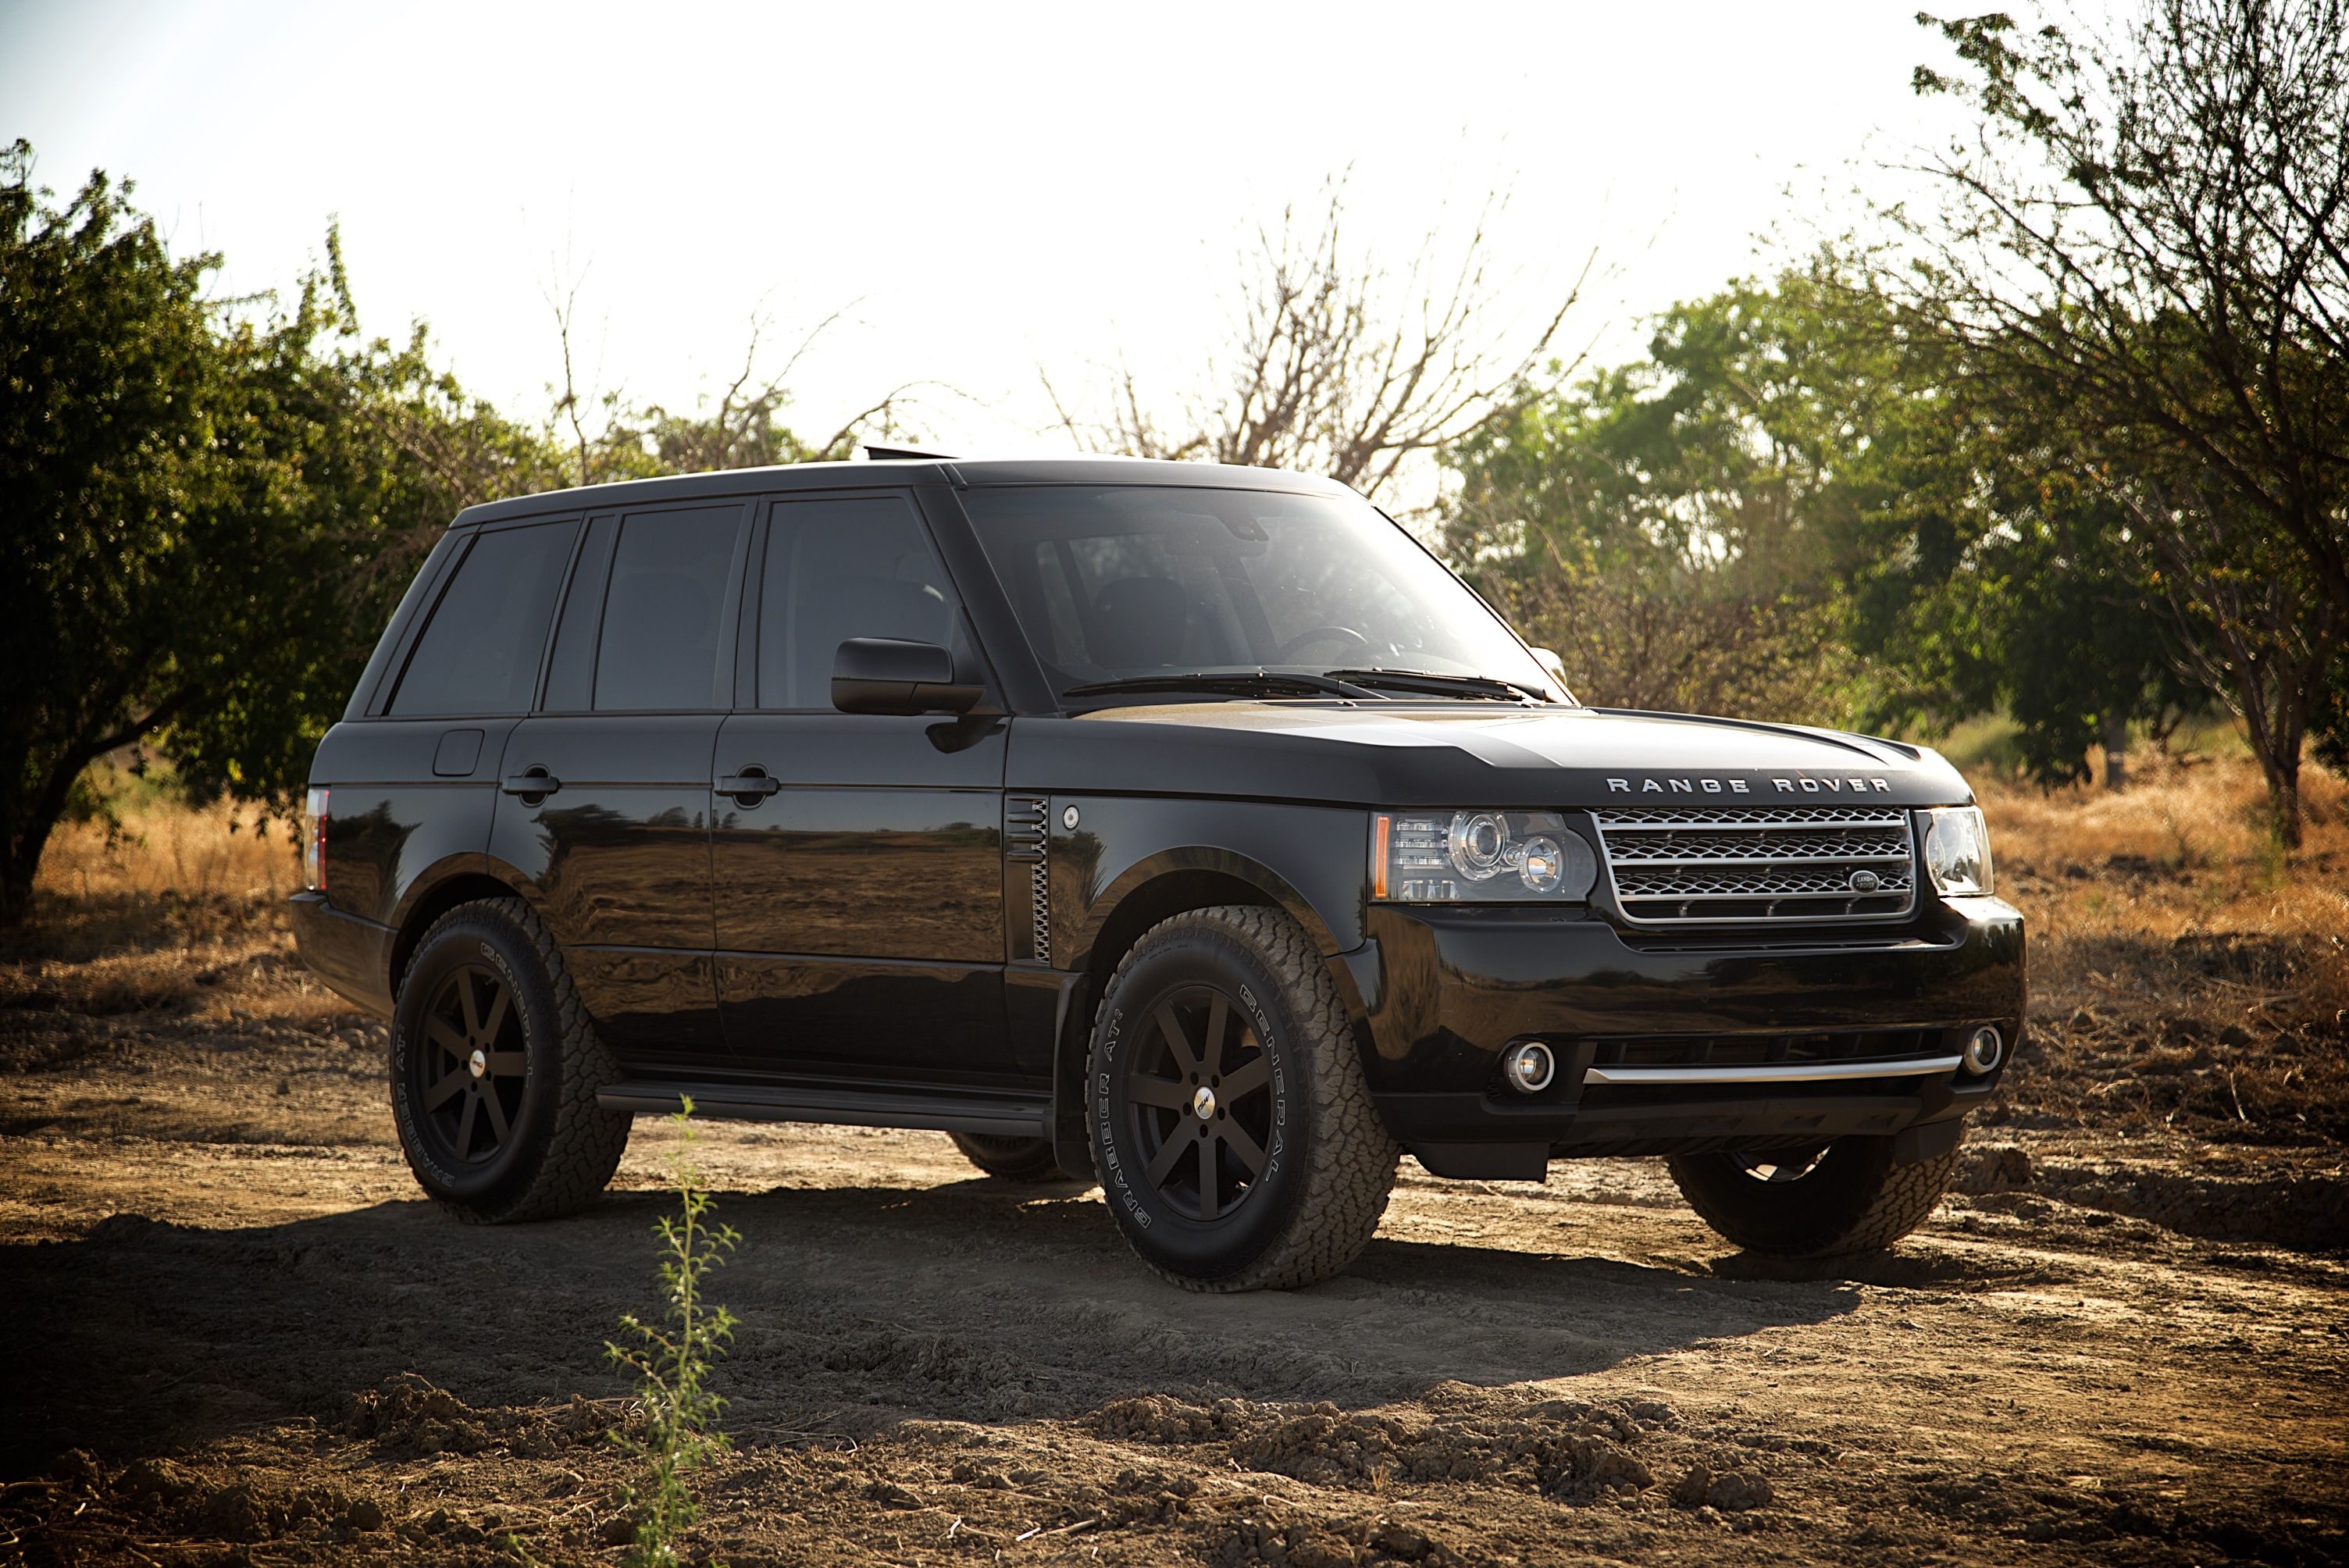 f Road Range Rover Cool Rides Pinterest